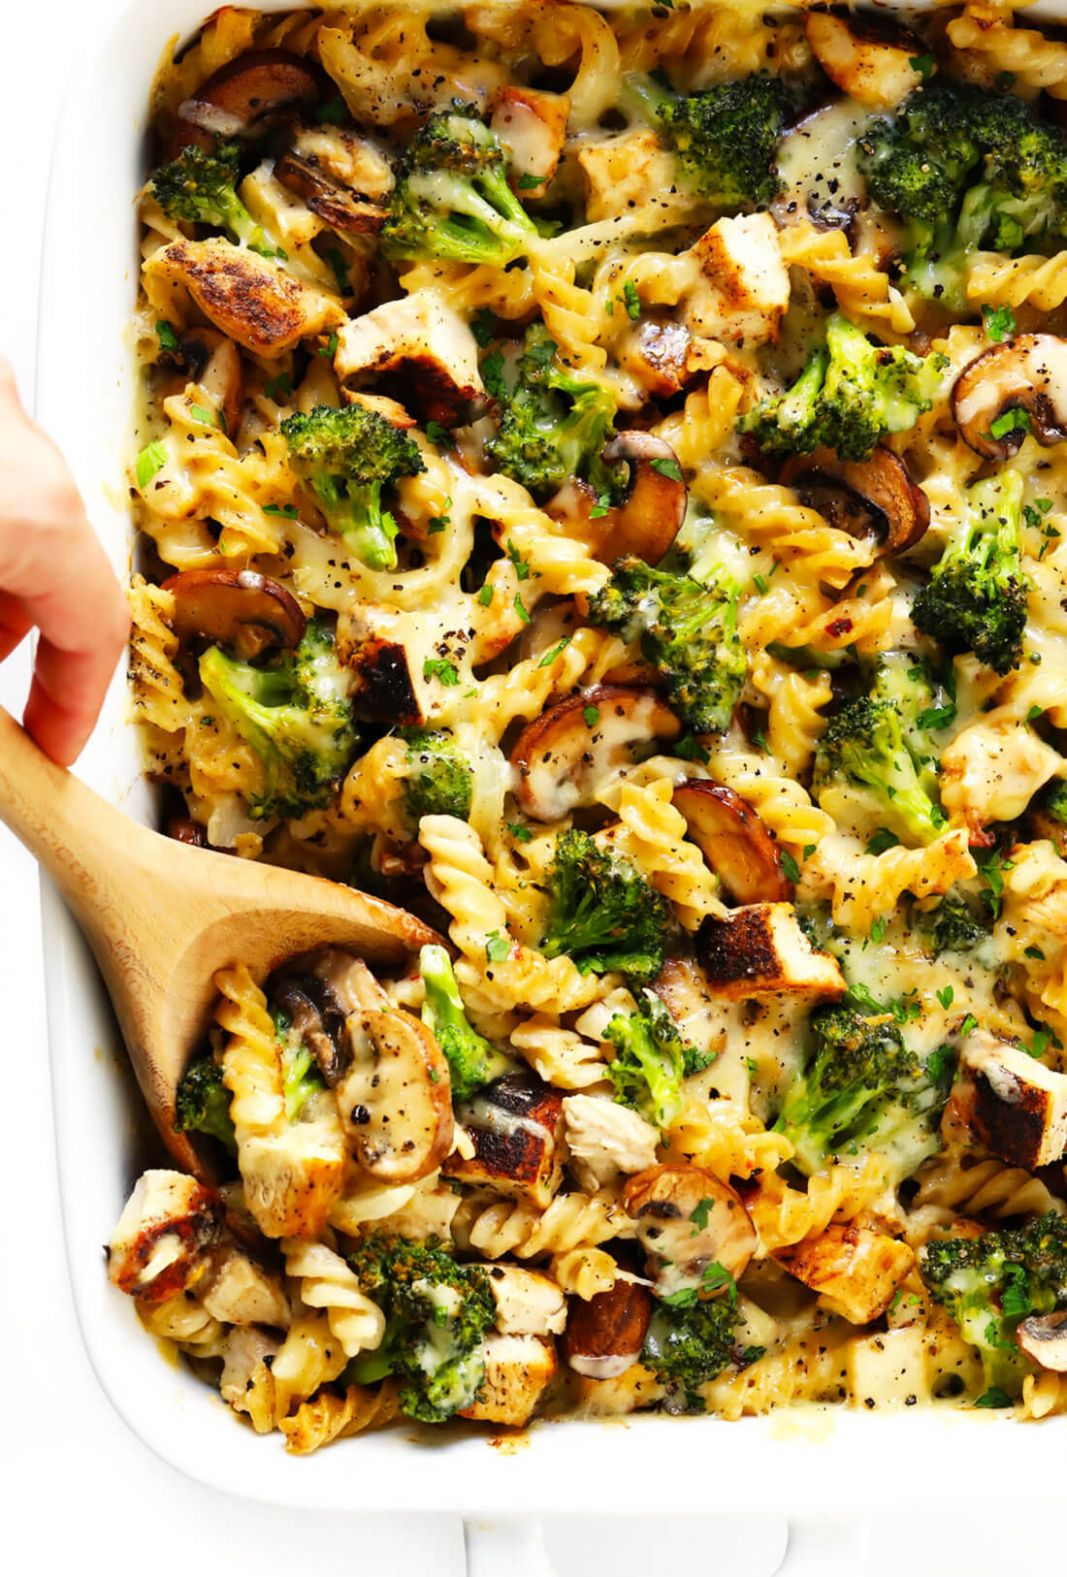 Healthier Broccoli Chicken Casserole Recipe | Gimme Some Oven